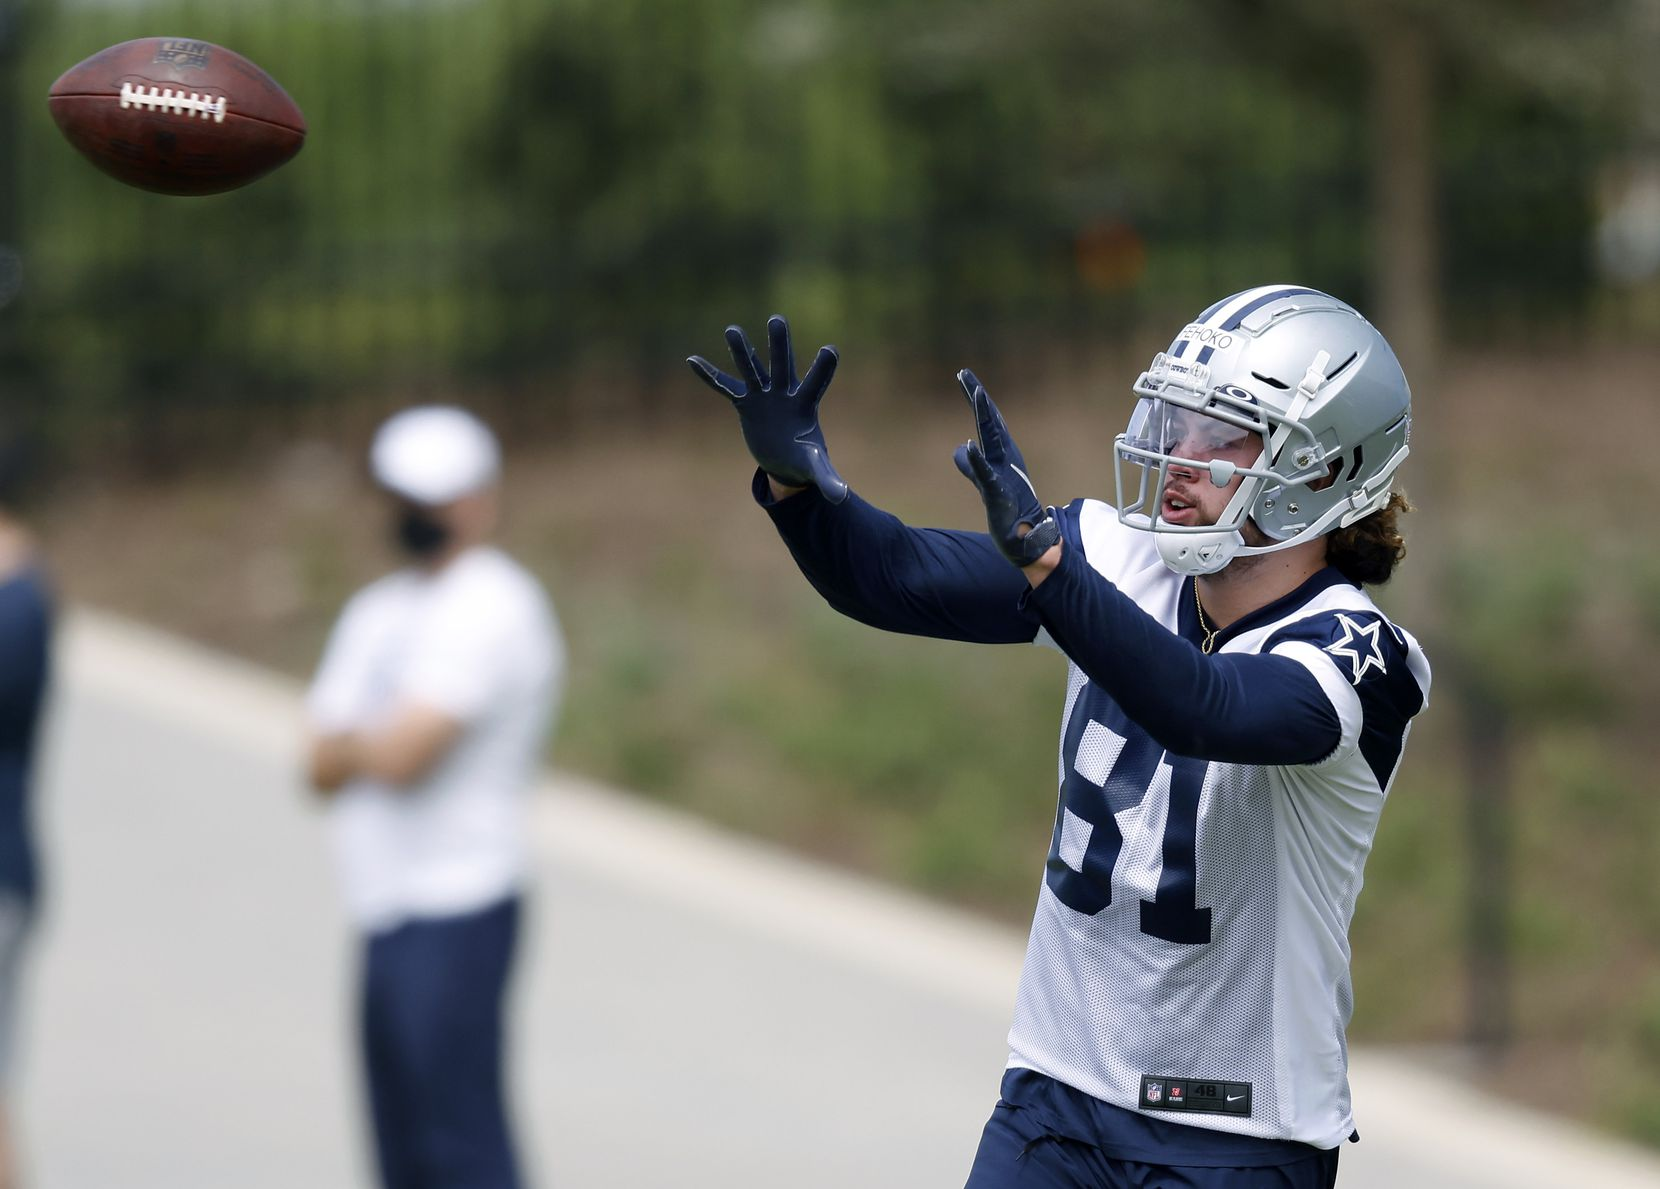 Dallas Cowboys rookie wide receiver Simi Fehoko (81) catches a ball during a rookie minicamp drill at the The Star in Frisco, Texas, Friday, May 14, 2021. (Tom Fox/The Dallas Morning News)